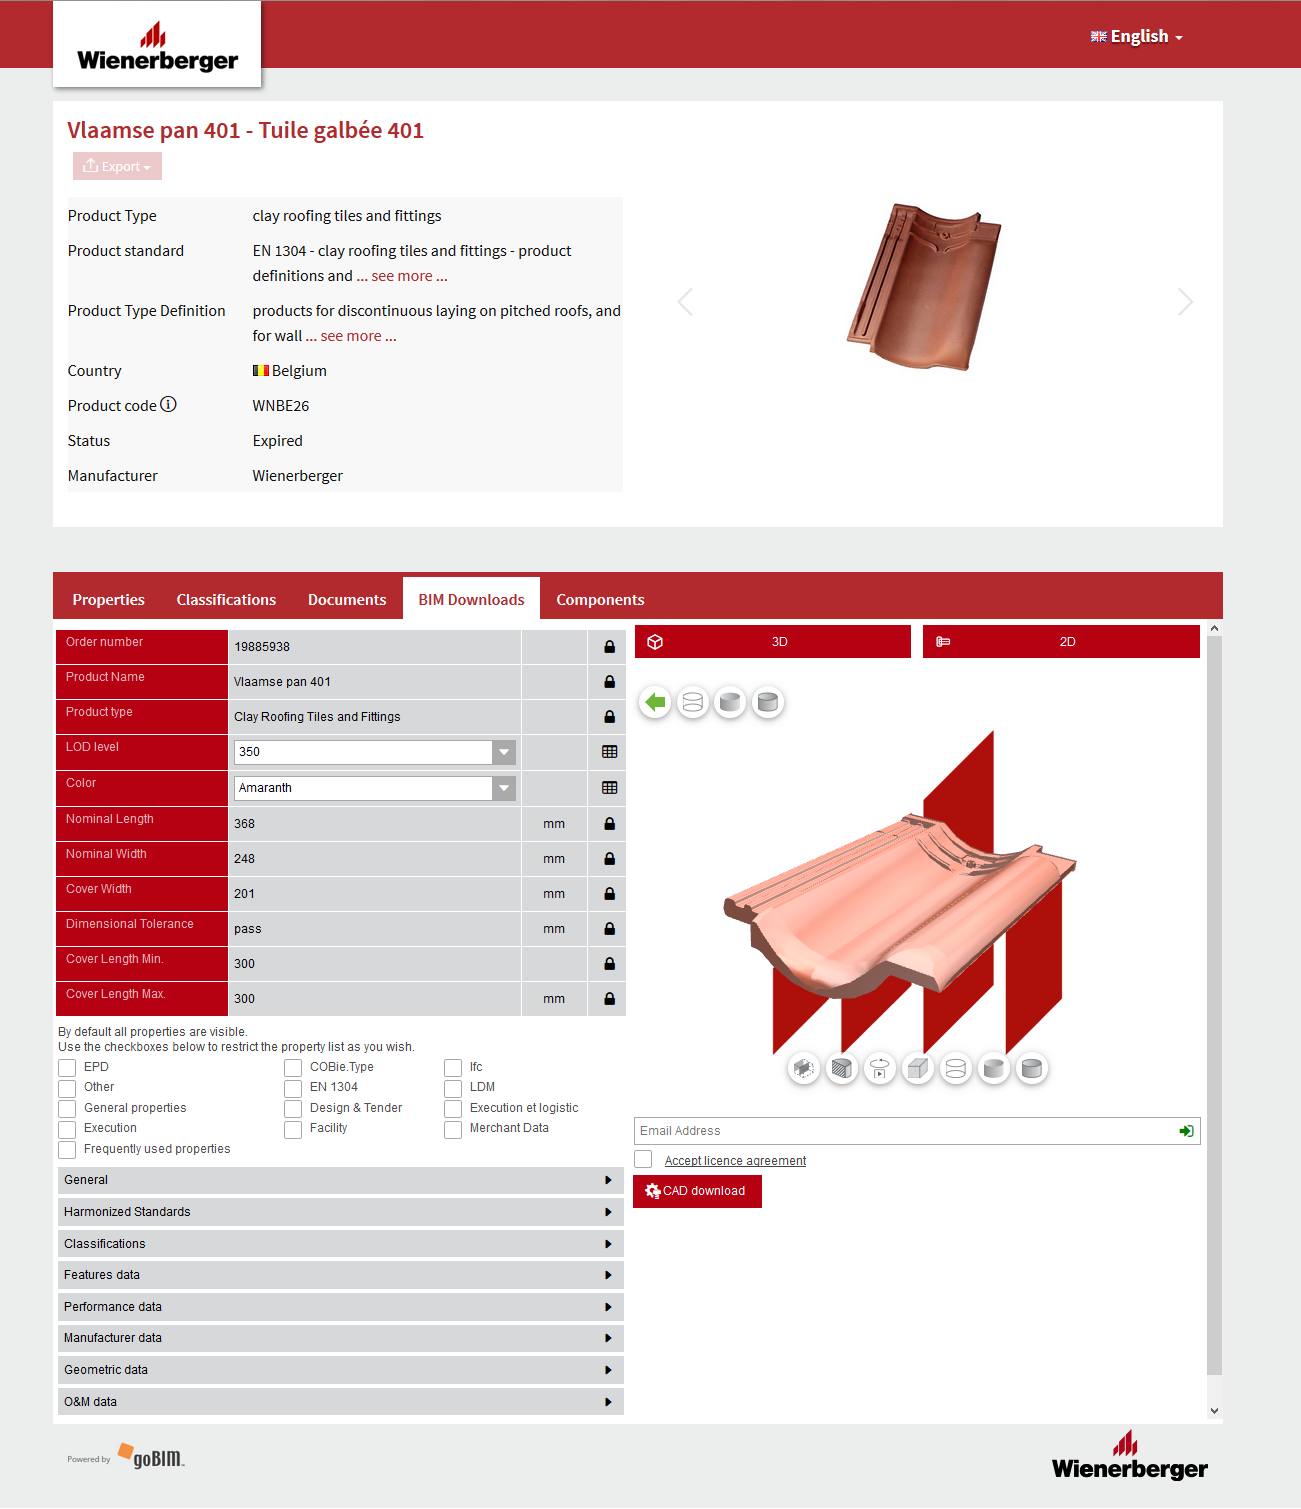 Interface of Wienerberger's branded digital catalogue powered by Cobuilder and CADENAS